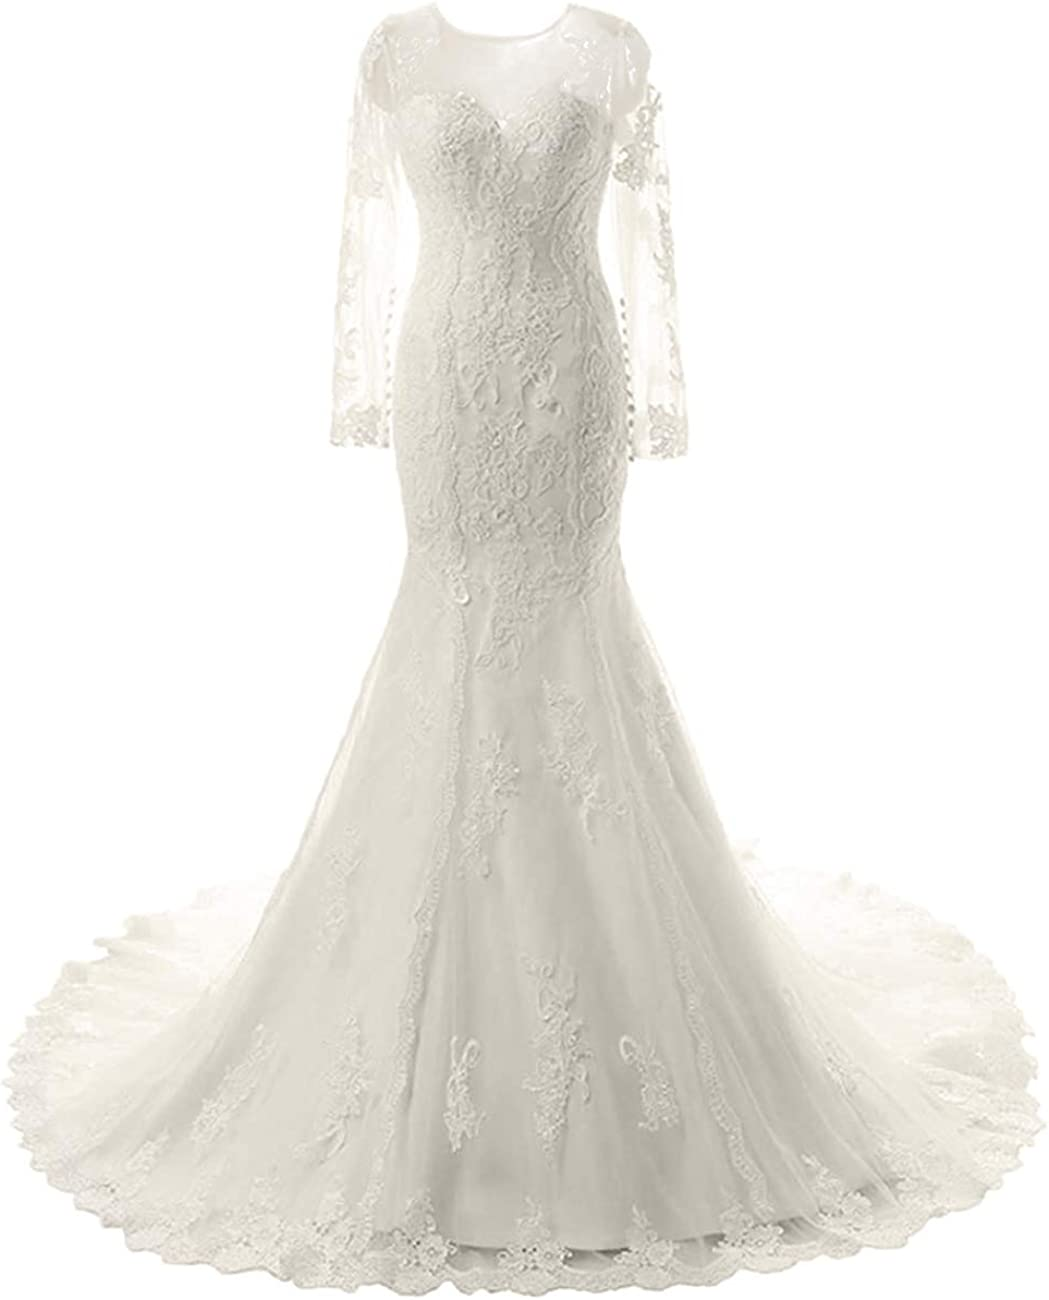 Wedding Dress Lace Bride Dresses Mermaid Bridal Gown with Long Sleeves